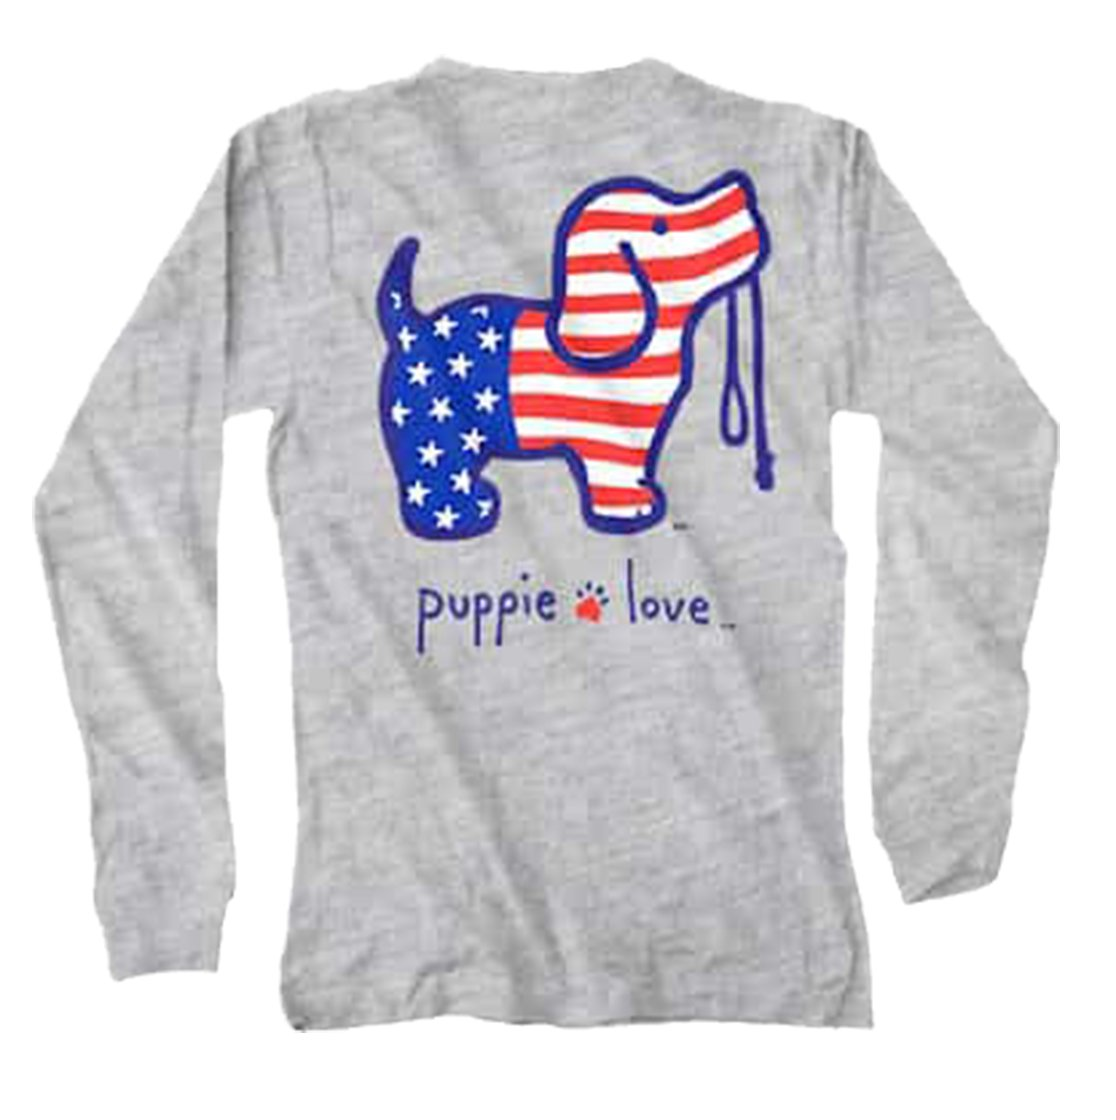 Puppie Love Youth USA Pup Pup Help Rescue Dogs Long Sleeve Tee-Youth Large